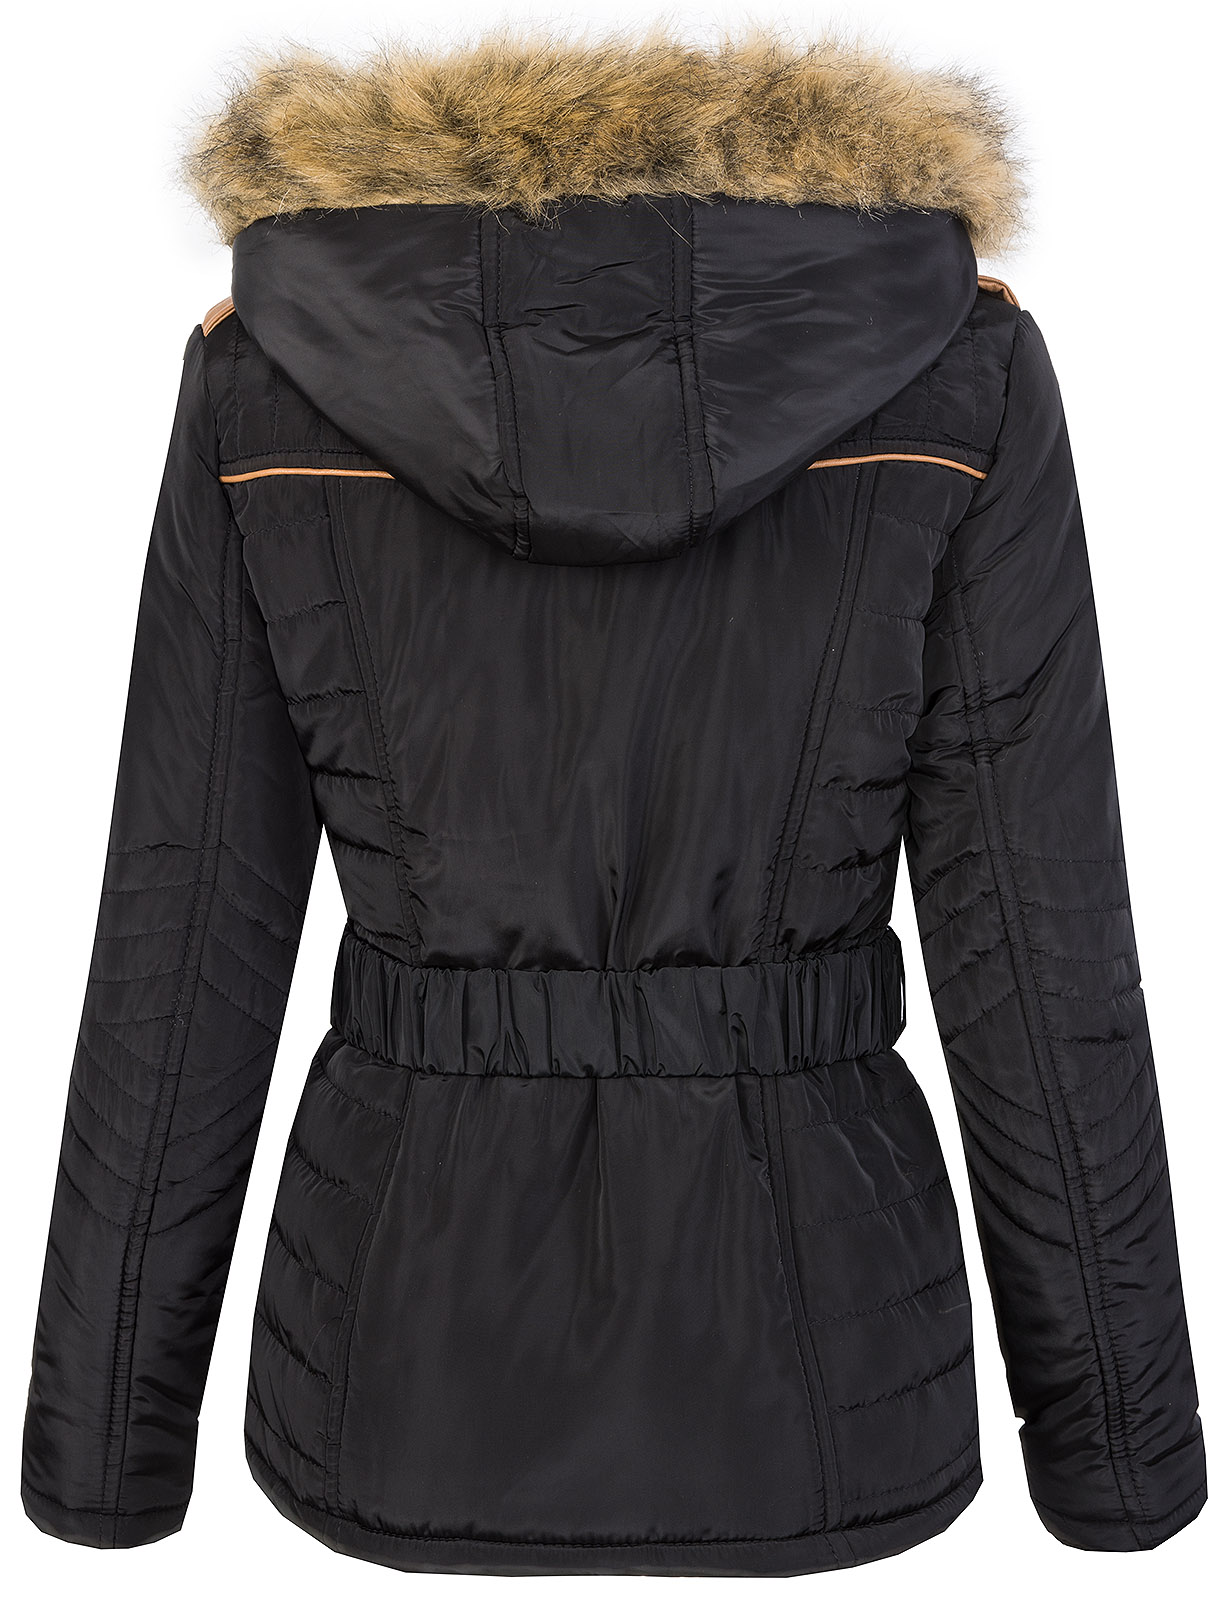 designer damen jacke parka mantel winterjacke steppjacke warm gef ttert d 356 ebay. Black Bedroom Furniture Sets. Home Design Ideas